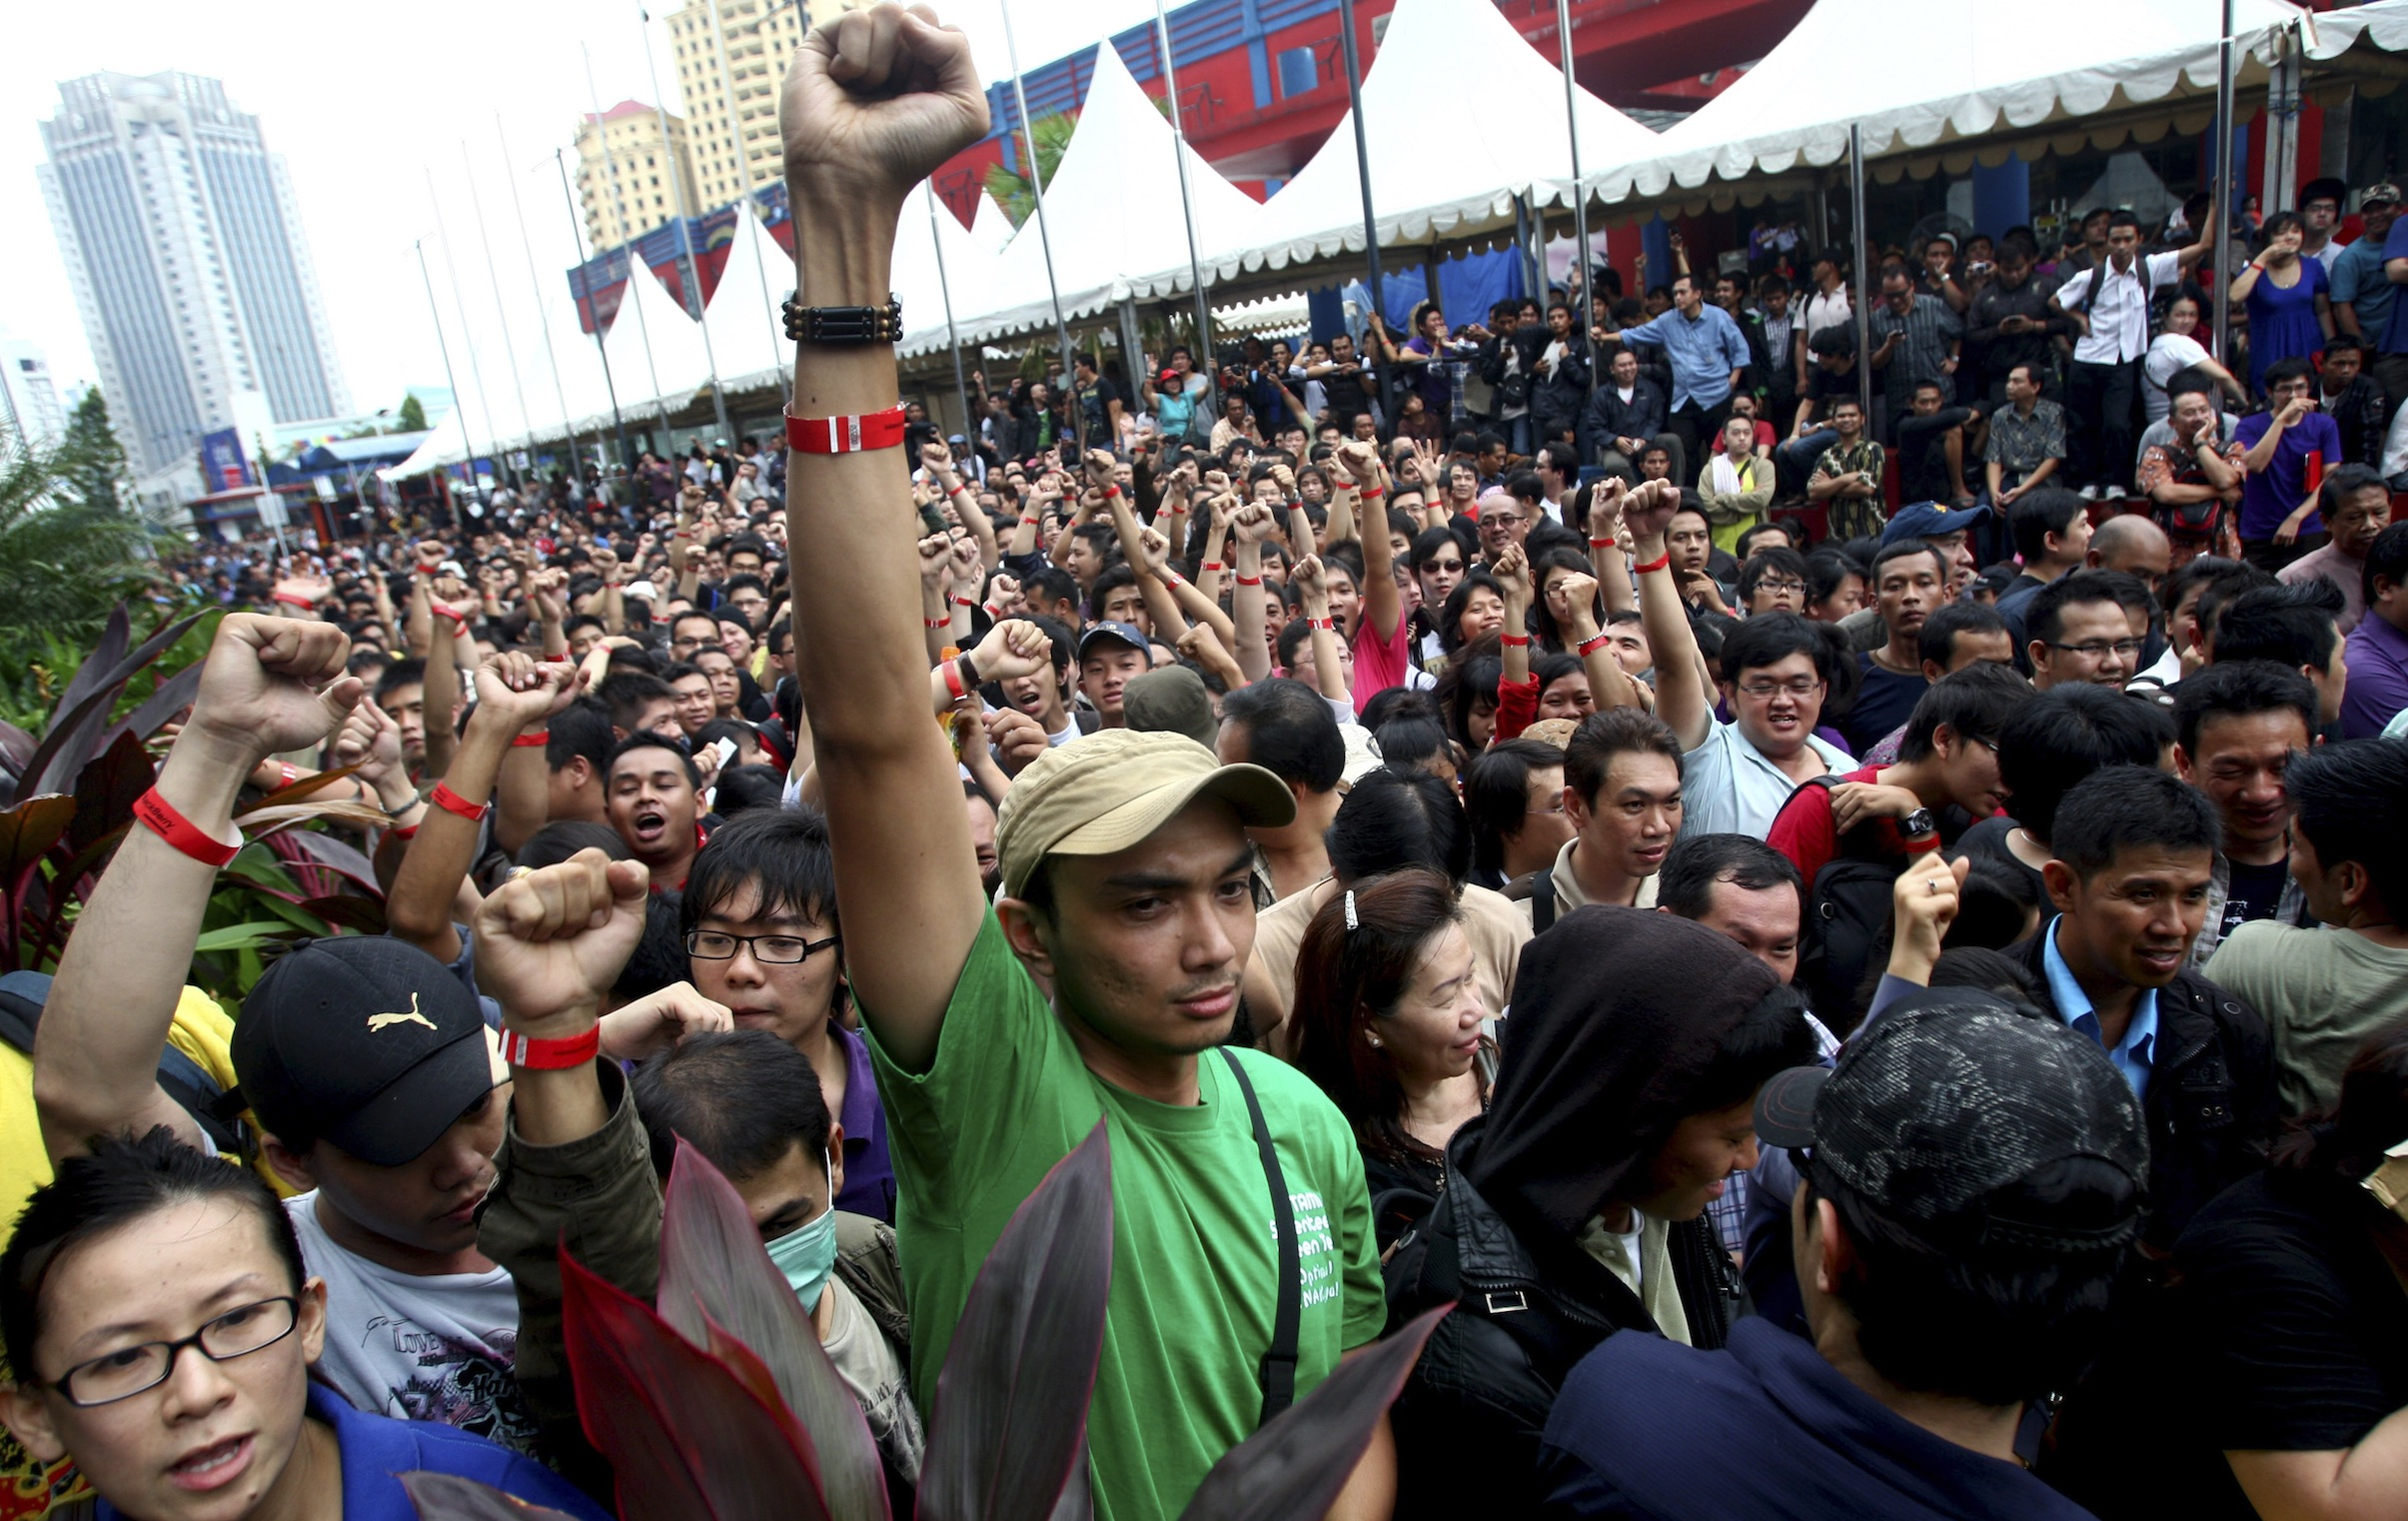 Impatient Indonesians raise their fists to show their 'priority' wrist bands as they queue up to buy the new BlackBerry 9790 at discounted price for the first 1,000 buyers outside a shopping mall in Jakarta, Indonesia, Friday, Nov. 25, 2011. Thousands of Indonesians jammed into a glitzy shopping mall Friday to get hold of the first BlackBerry Bold 9790s being sold worldwide.